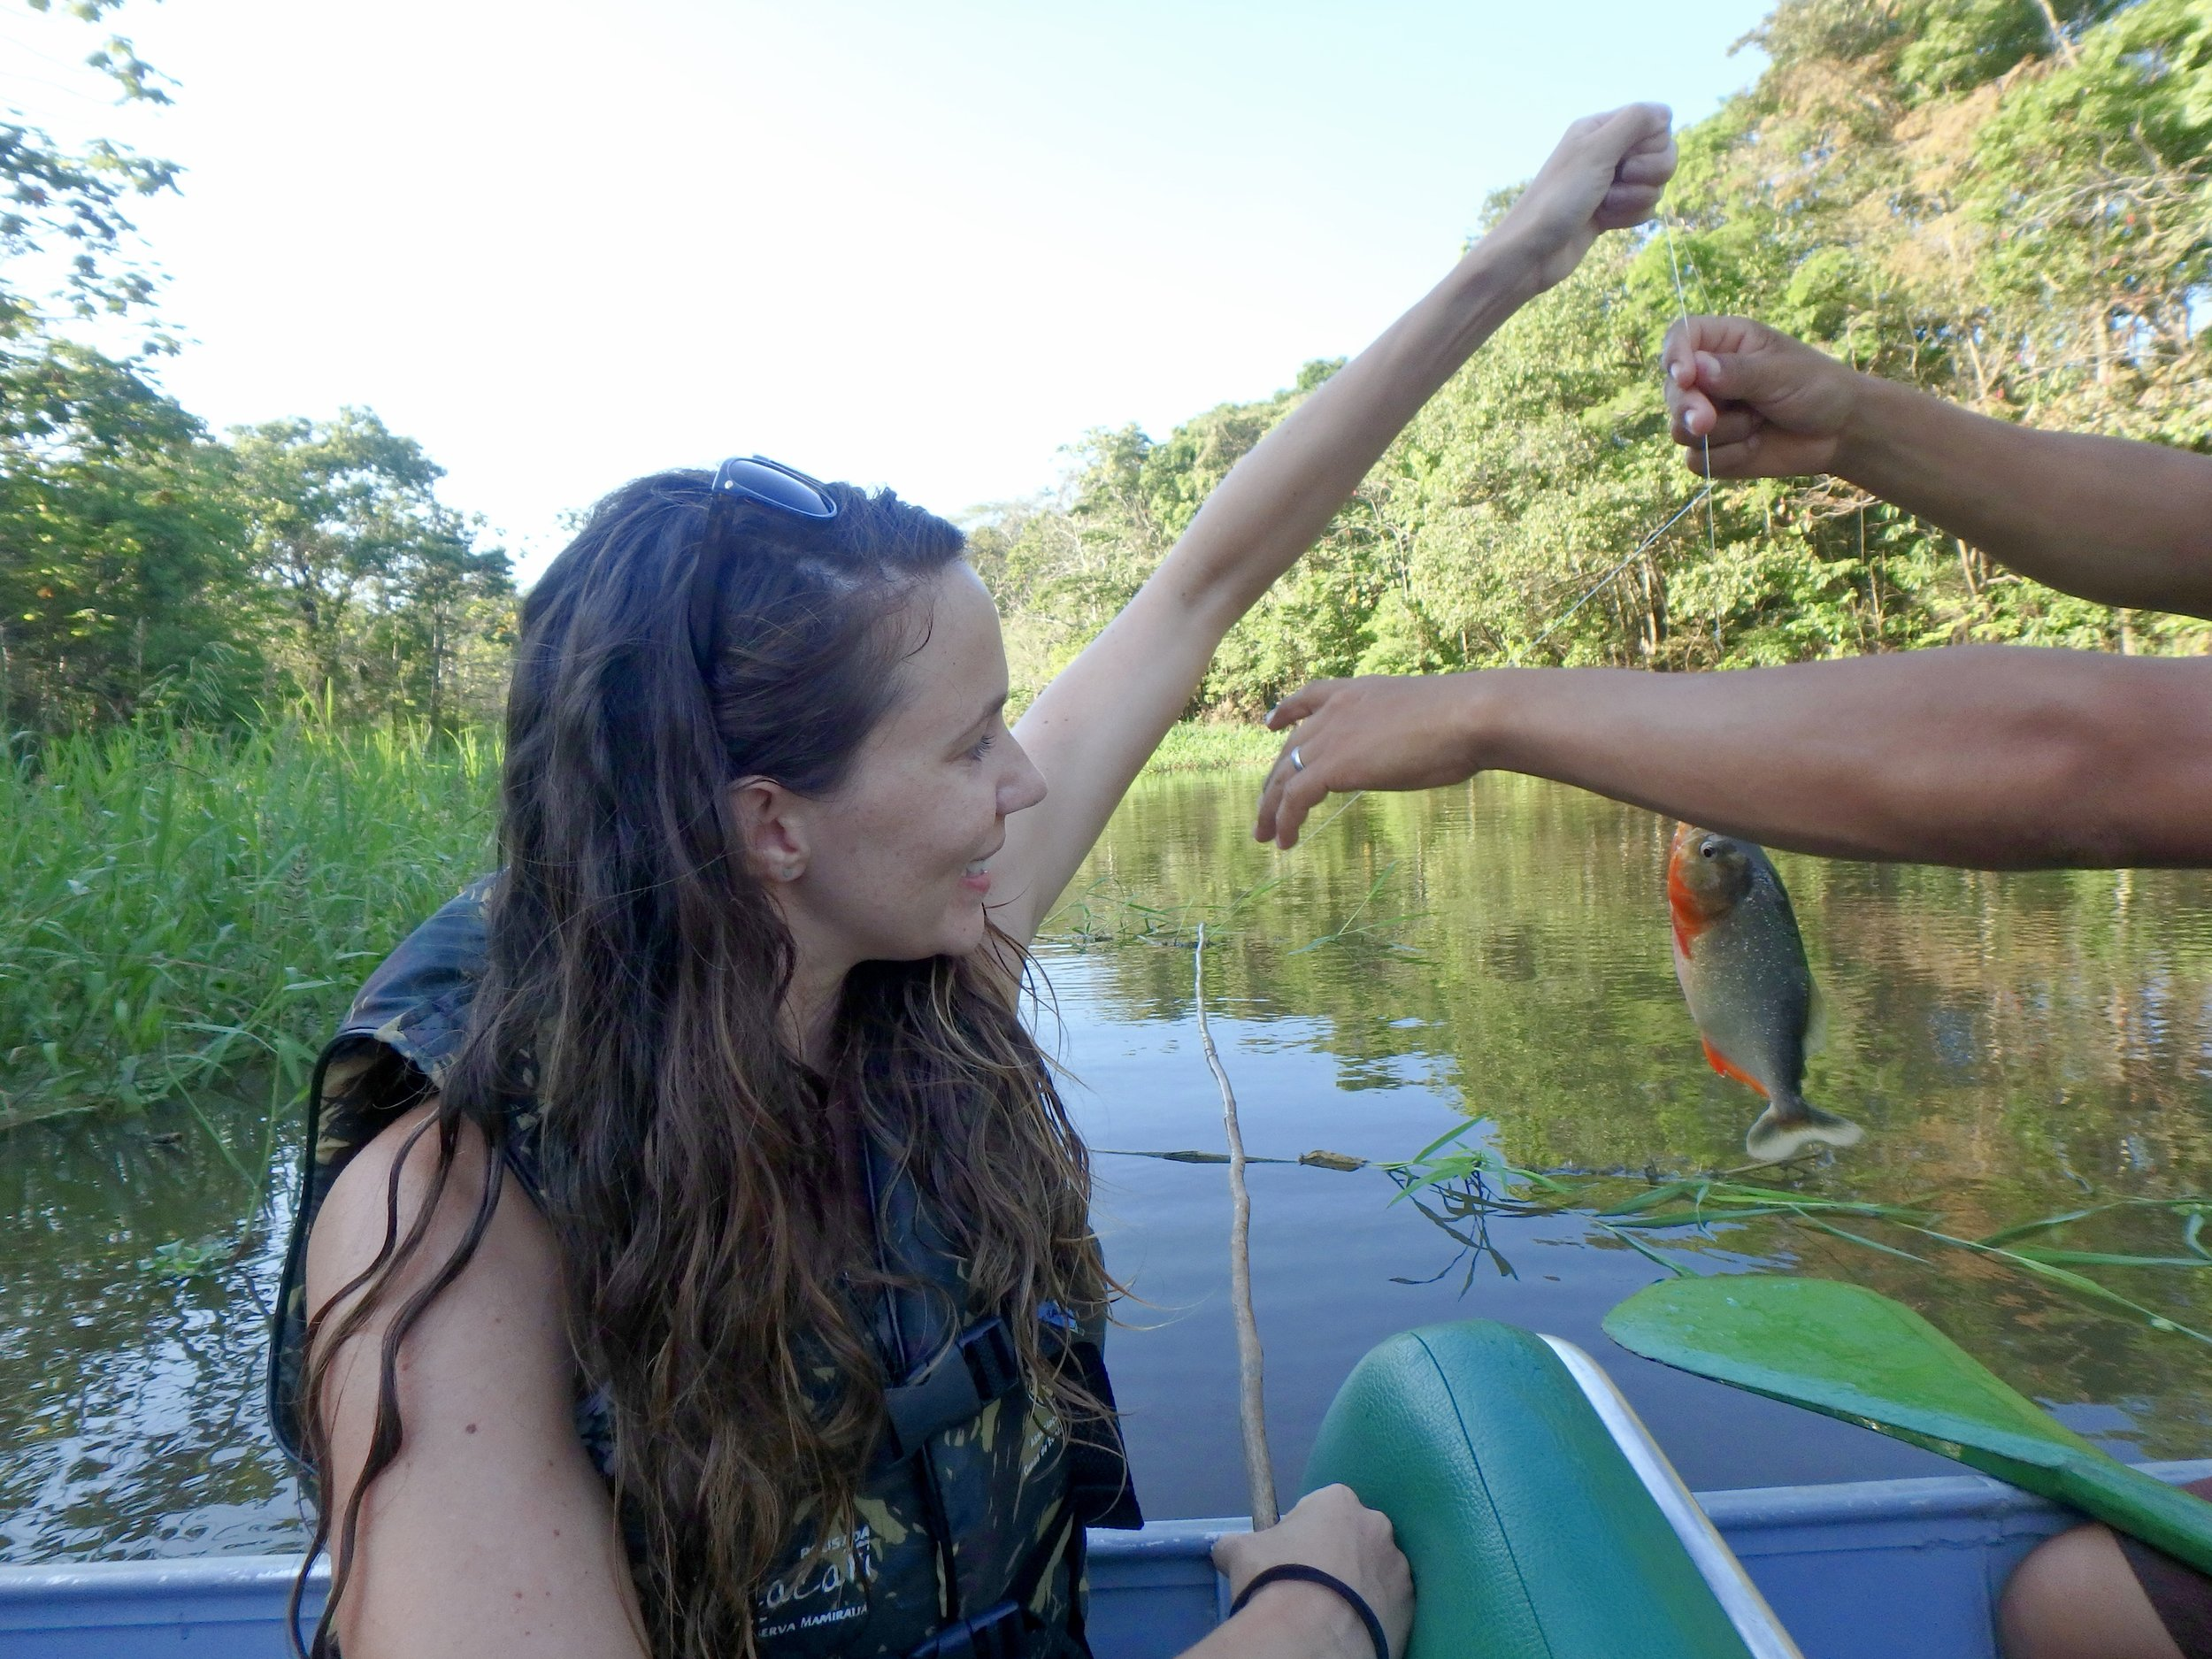 Piranha fishing is surprisingly easy. Here, the guide tells me not to let my arm so close to the fish's mouth...